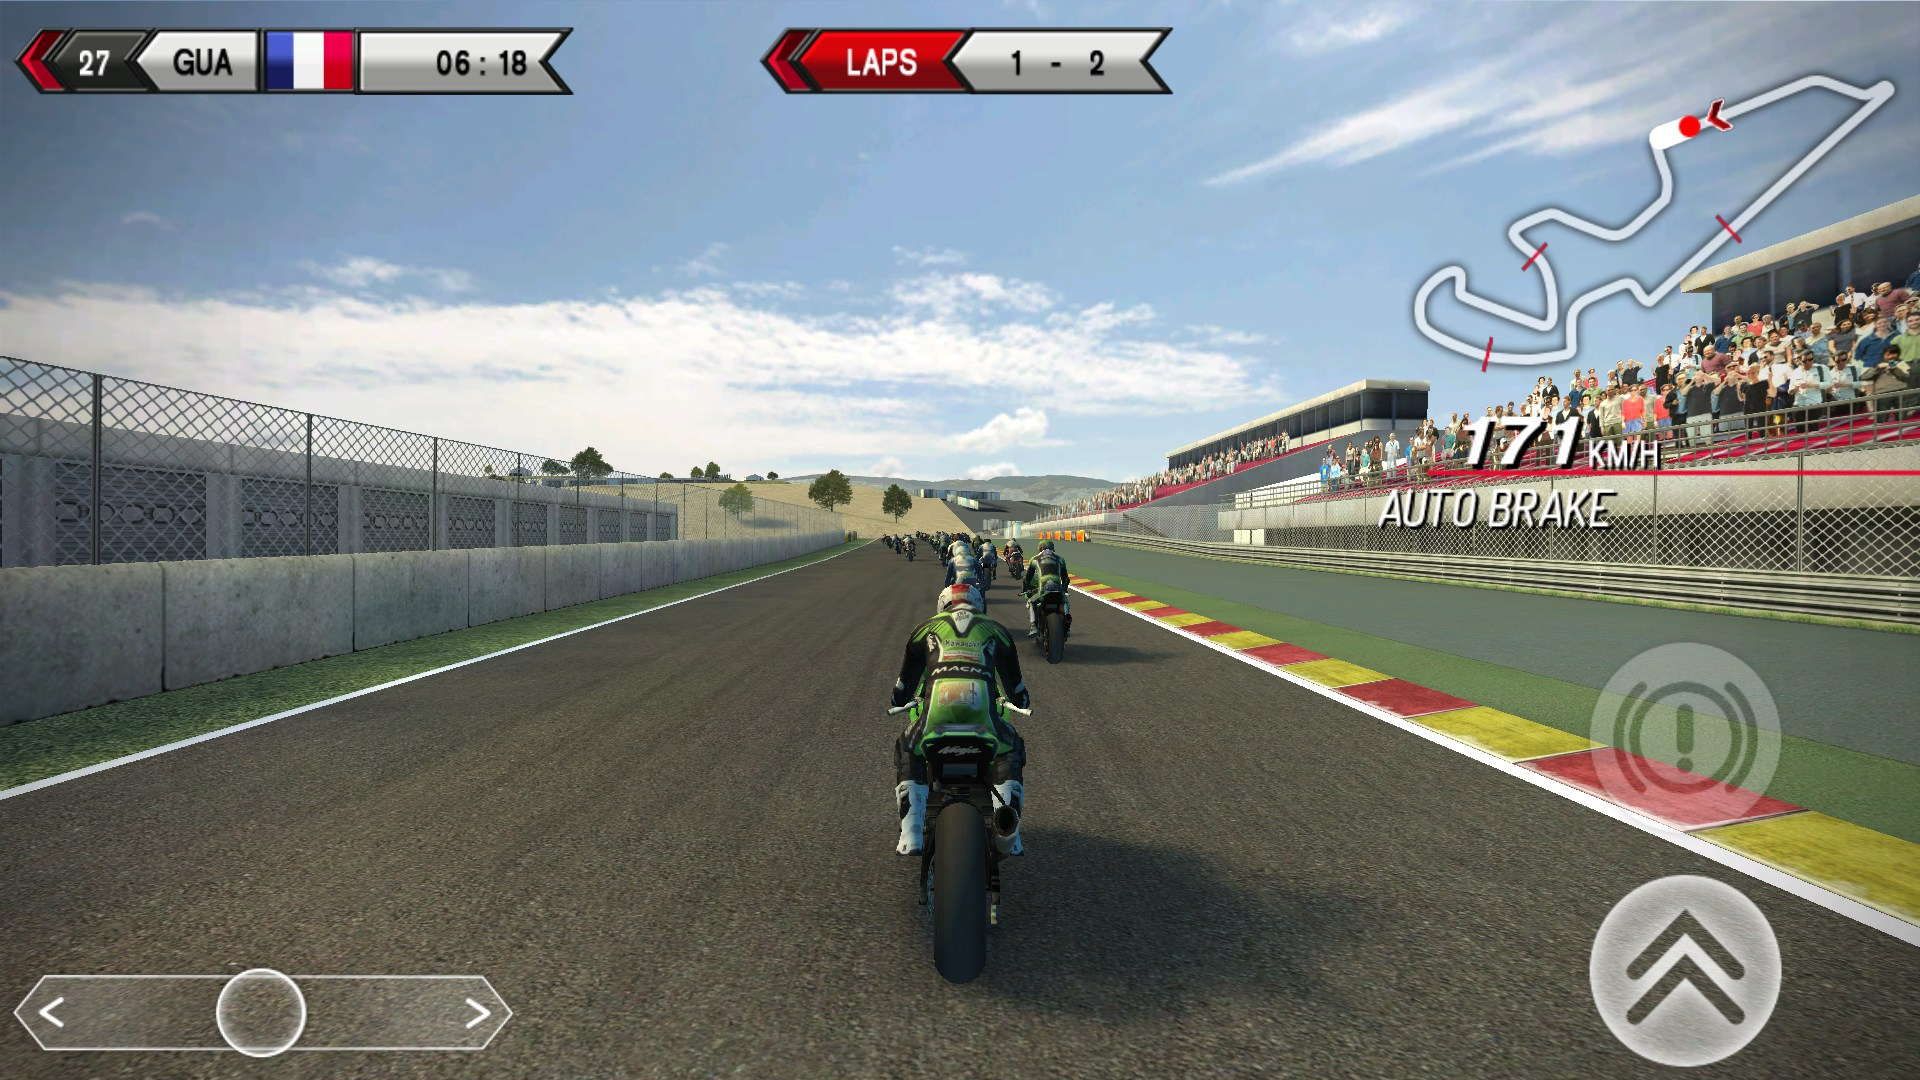 Good Games For Free : Sbk official mobile game games for android free